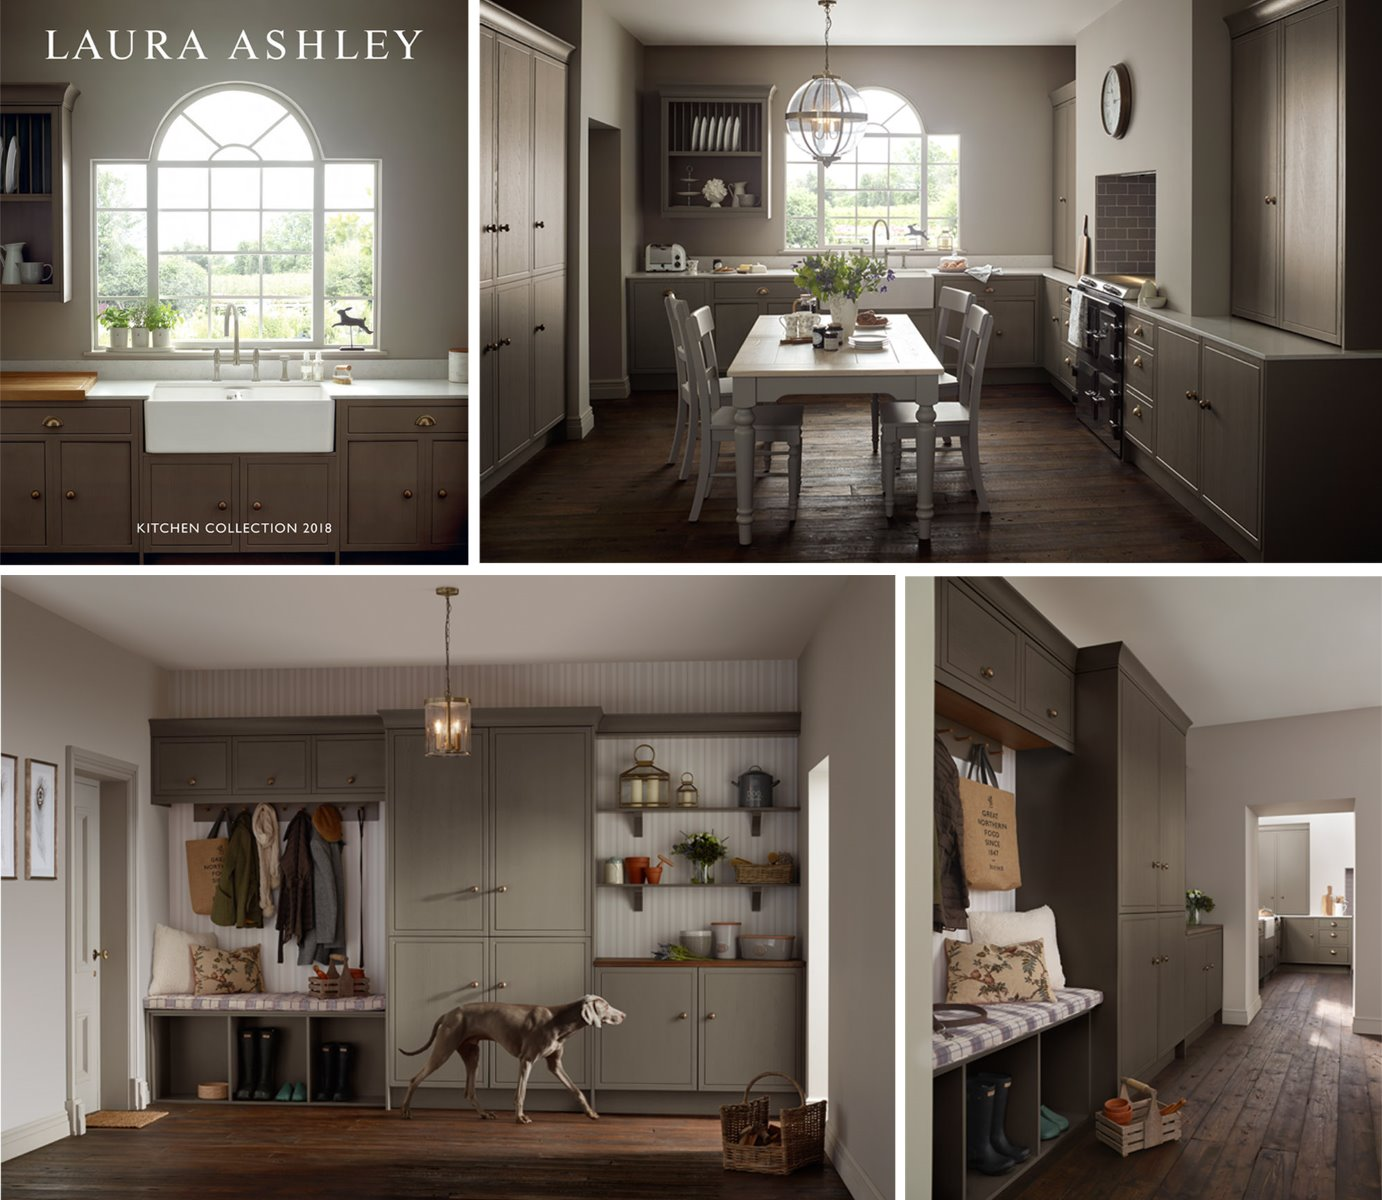 Hardbury Laura Ashley Kitchens Set Visions photography